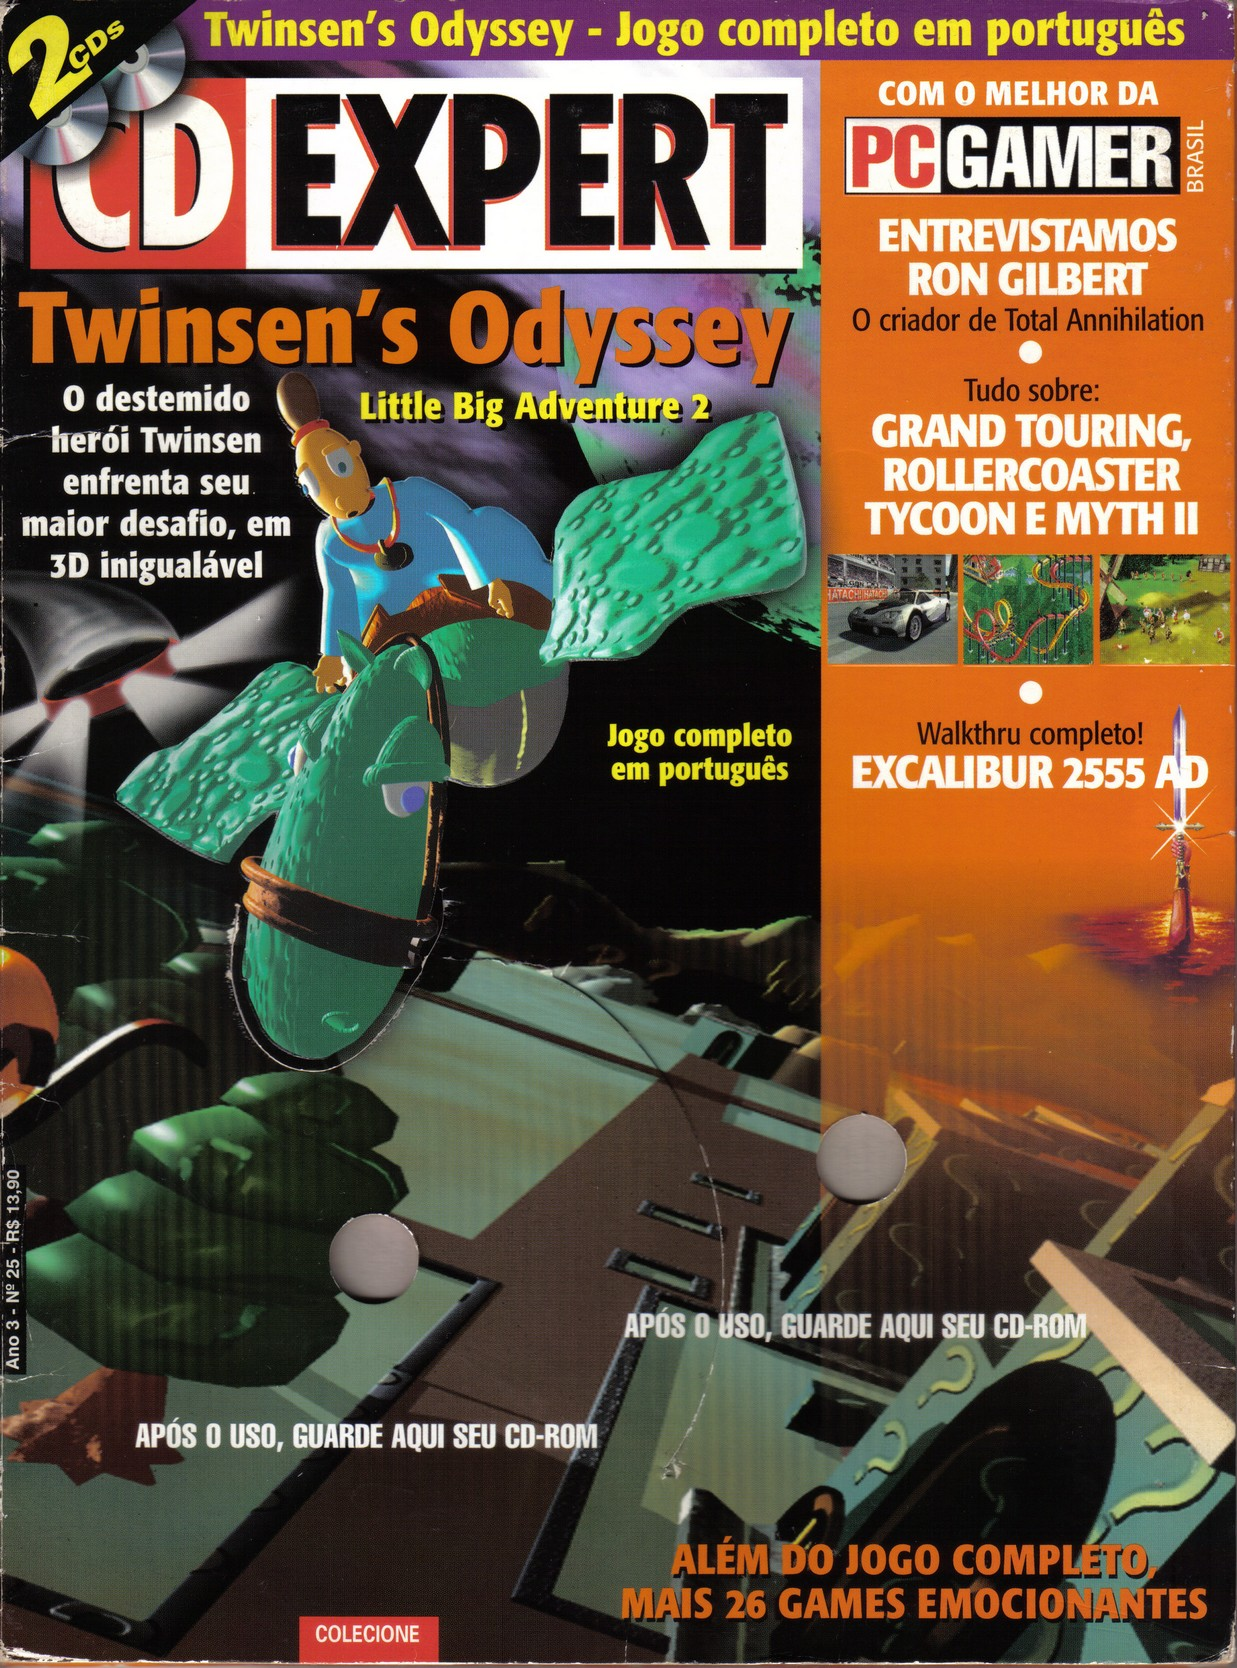 CD Gamer issue 25 - front